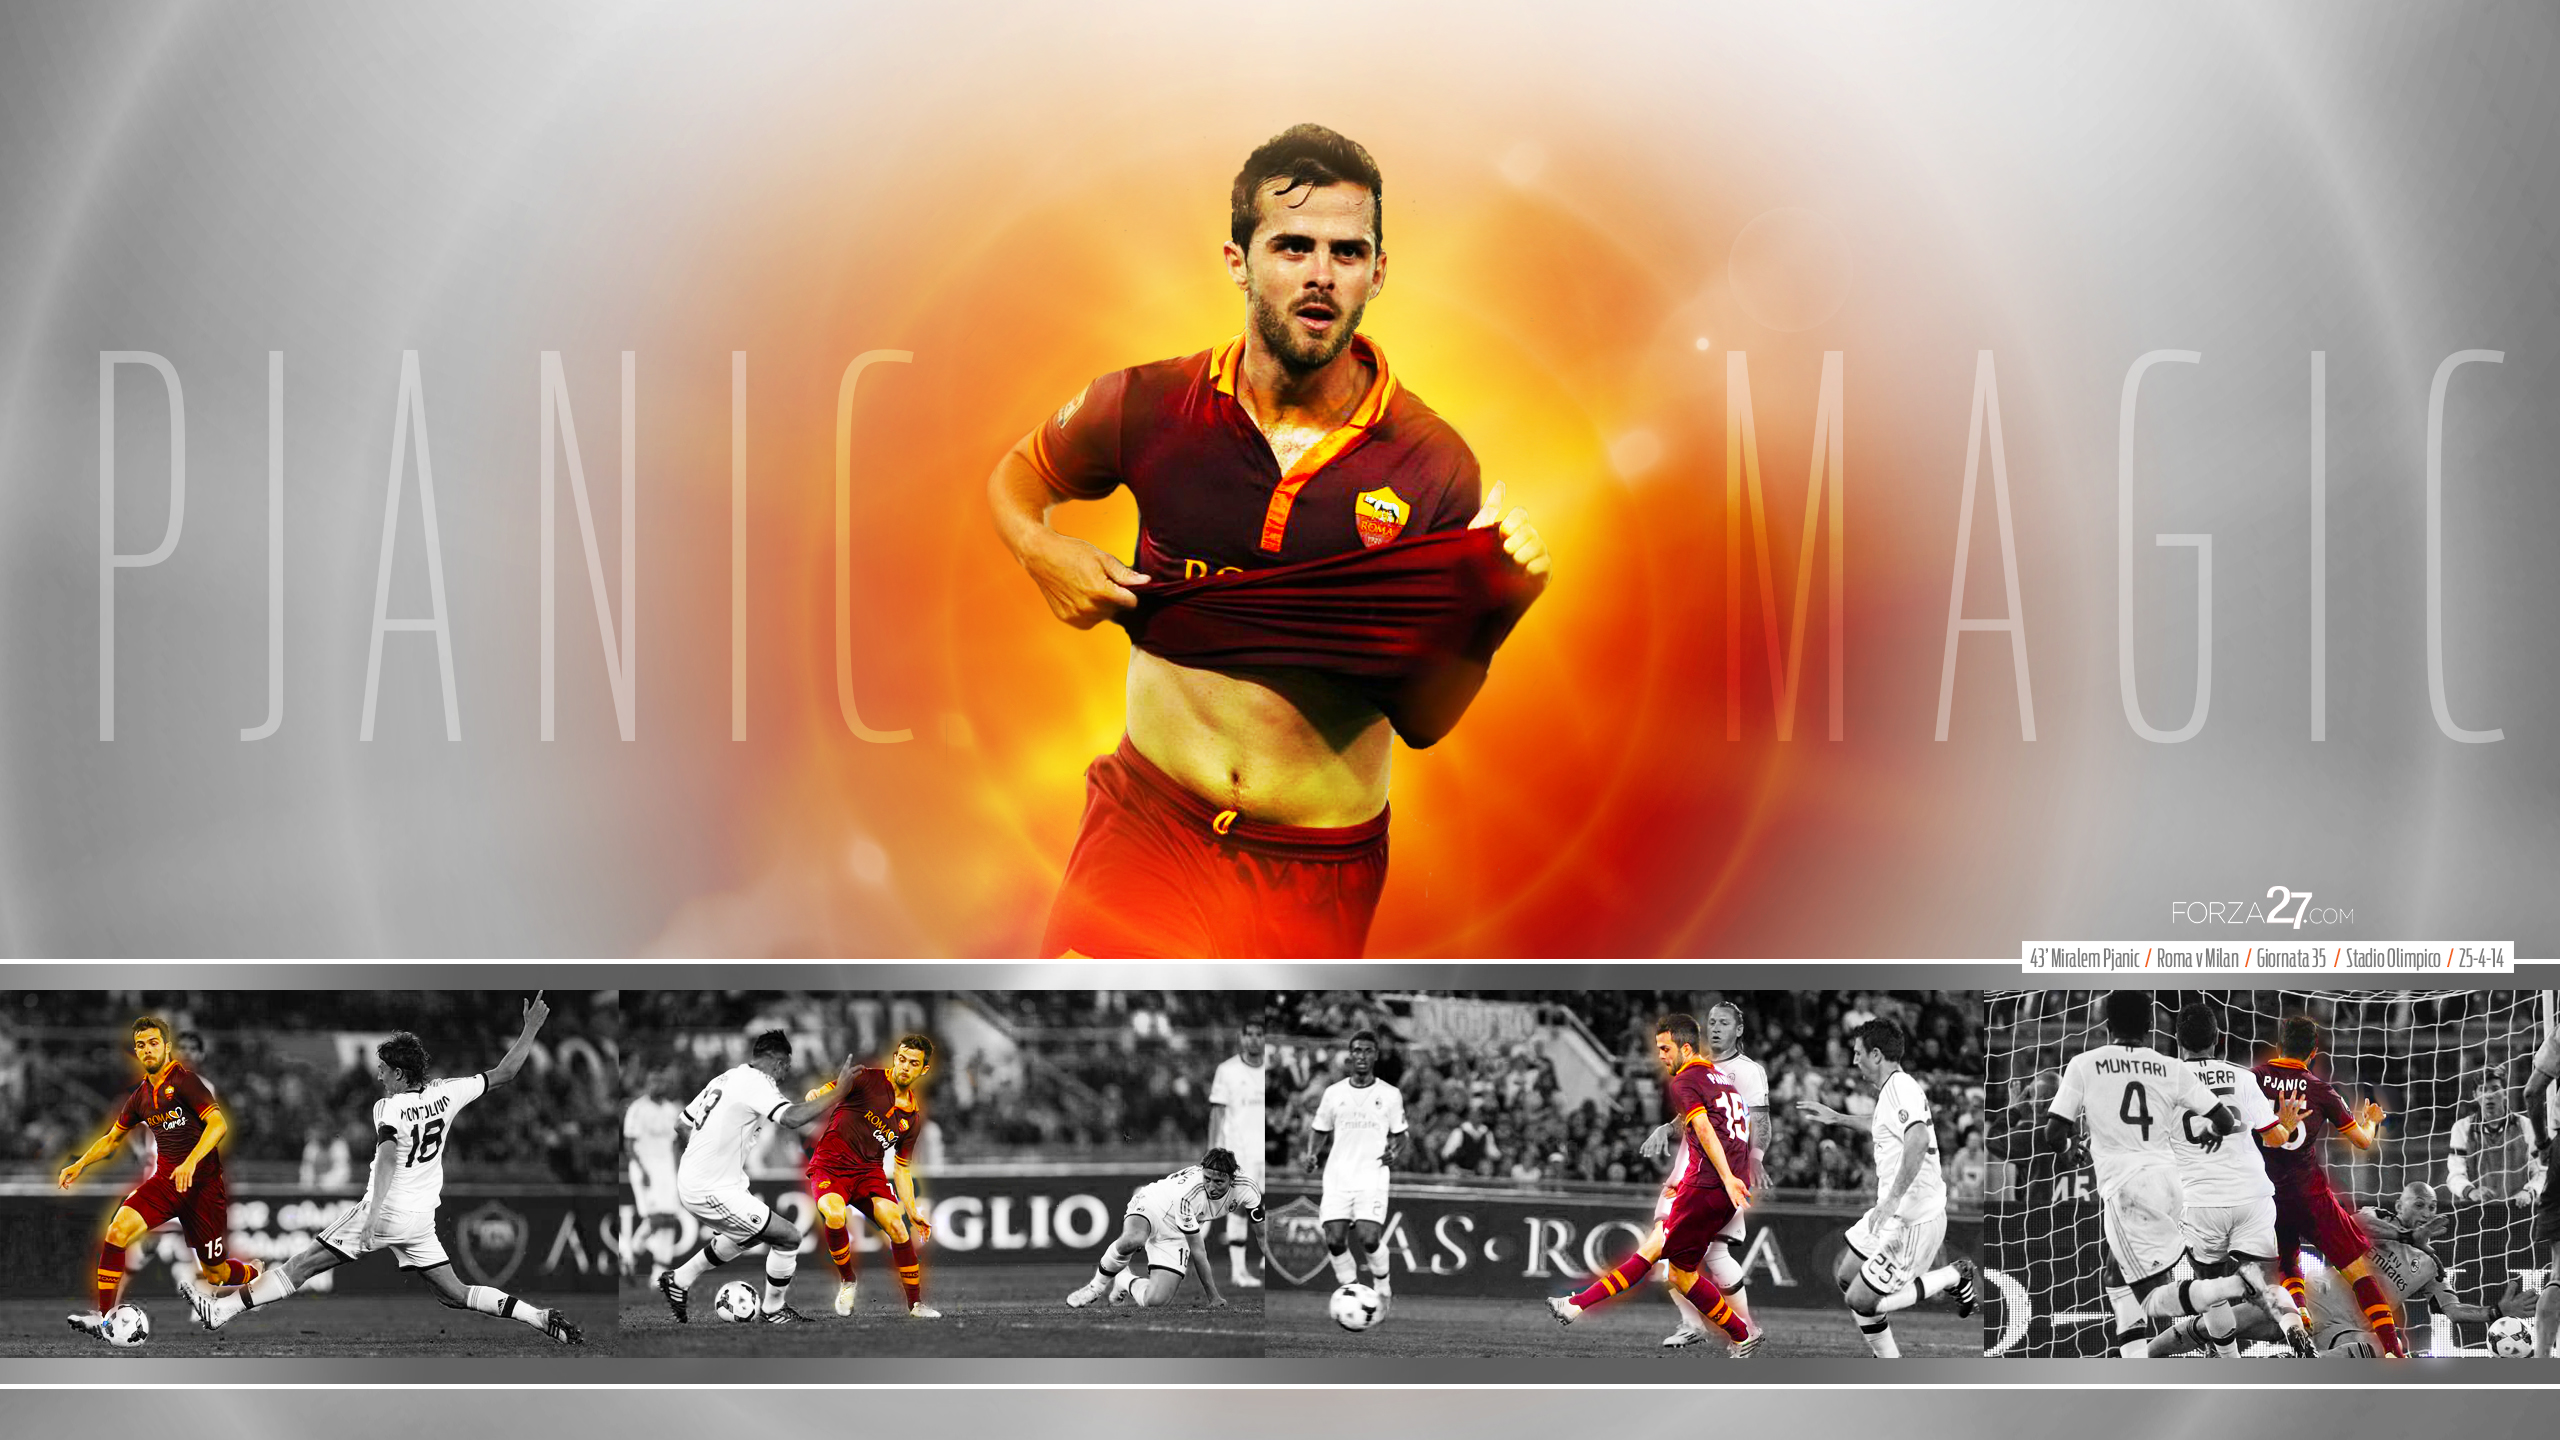 Pjanic_Magic